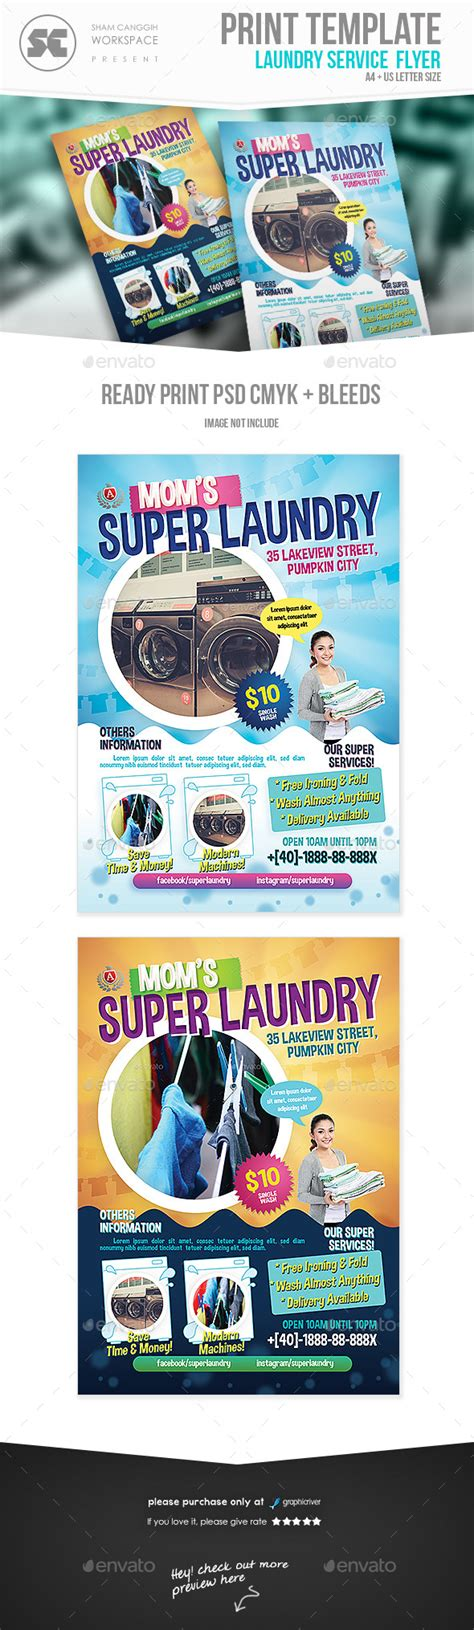 ironing service flyer template ironing flyers templates 187 tinkytyler org stock photos